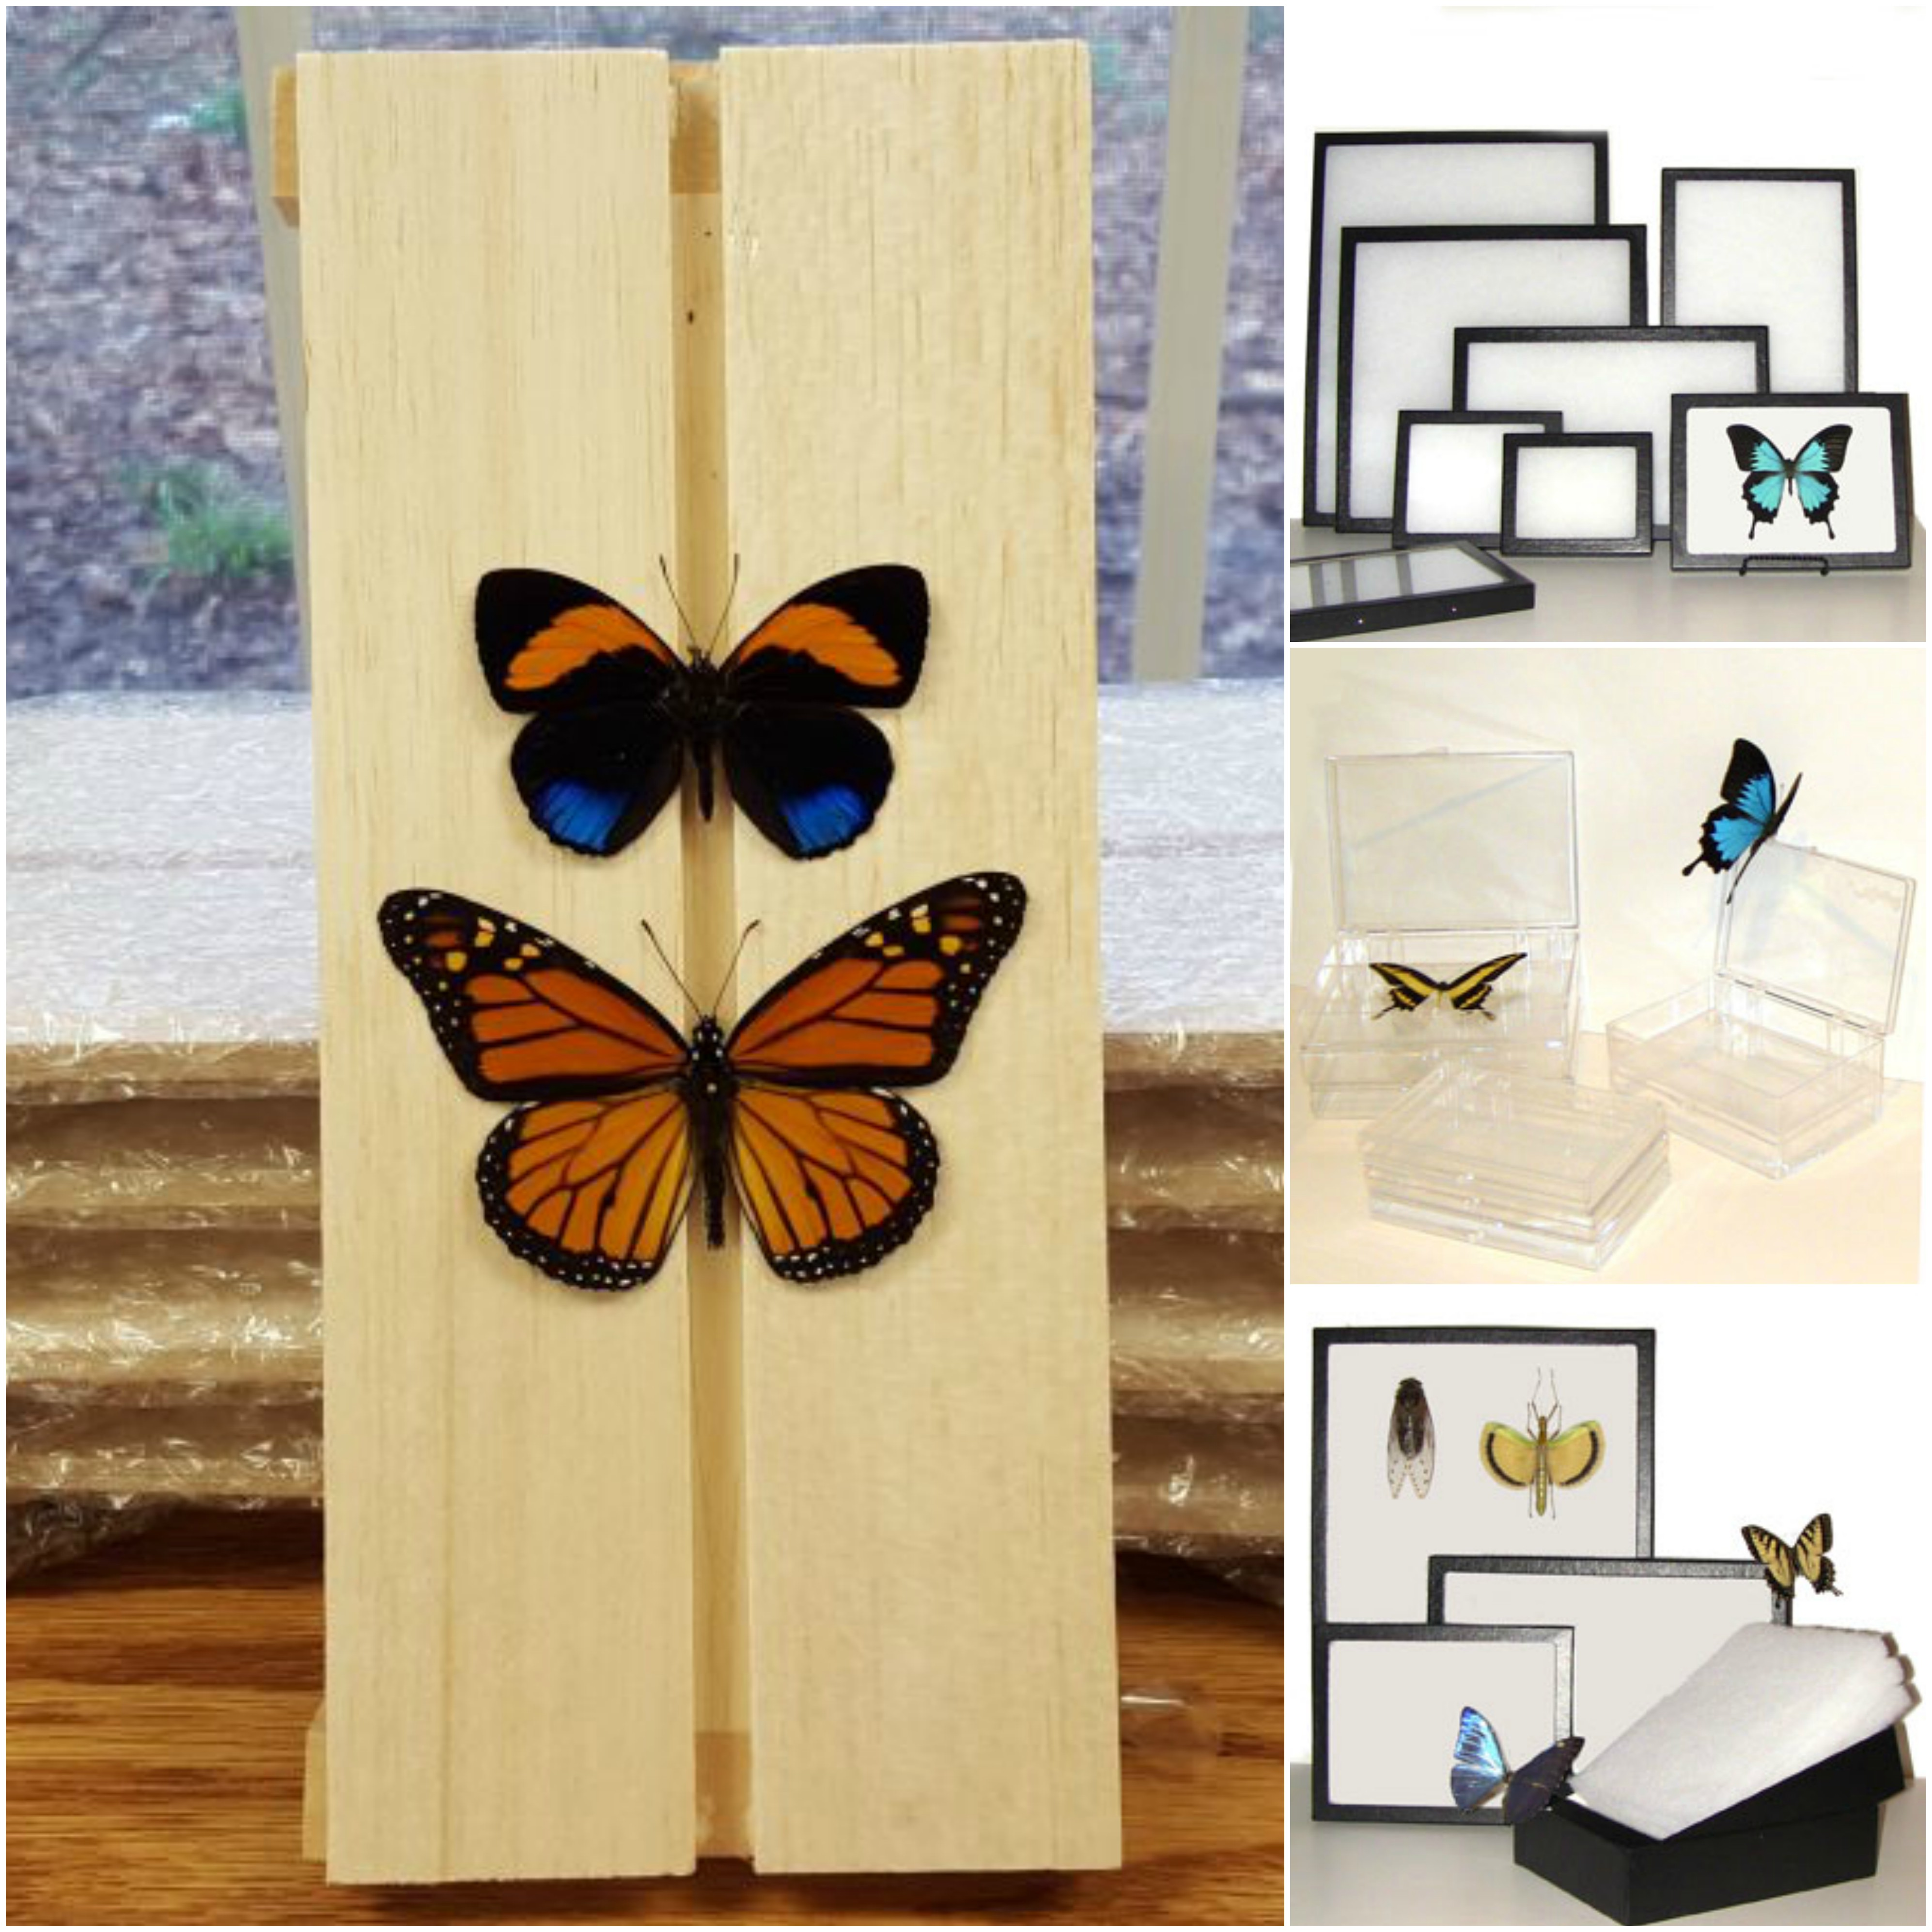 Butterfly Specimens, Insect Displays and Supplies for Insect Collectors